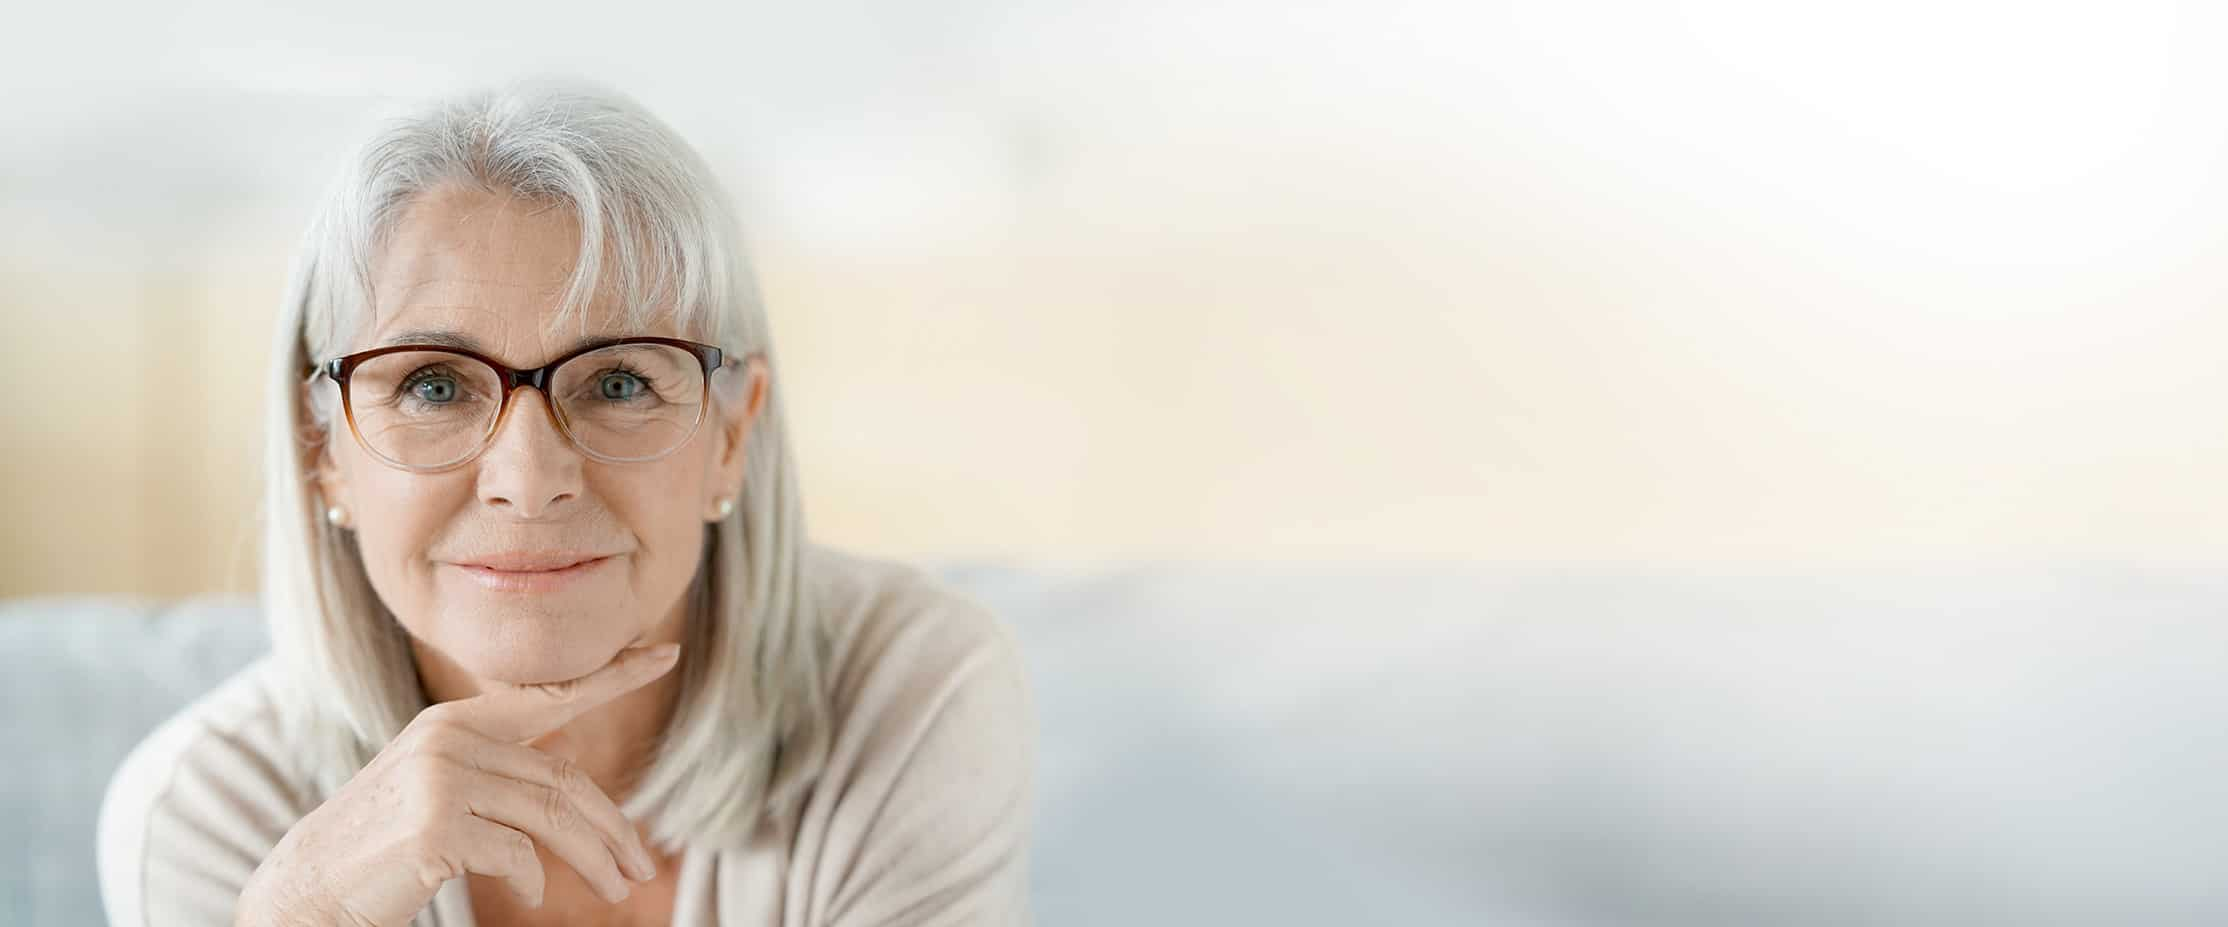 Senior Woman Subtle Smile - Header Image